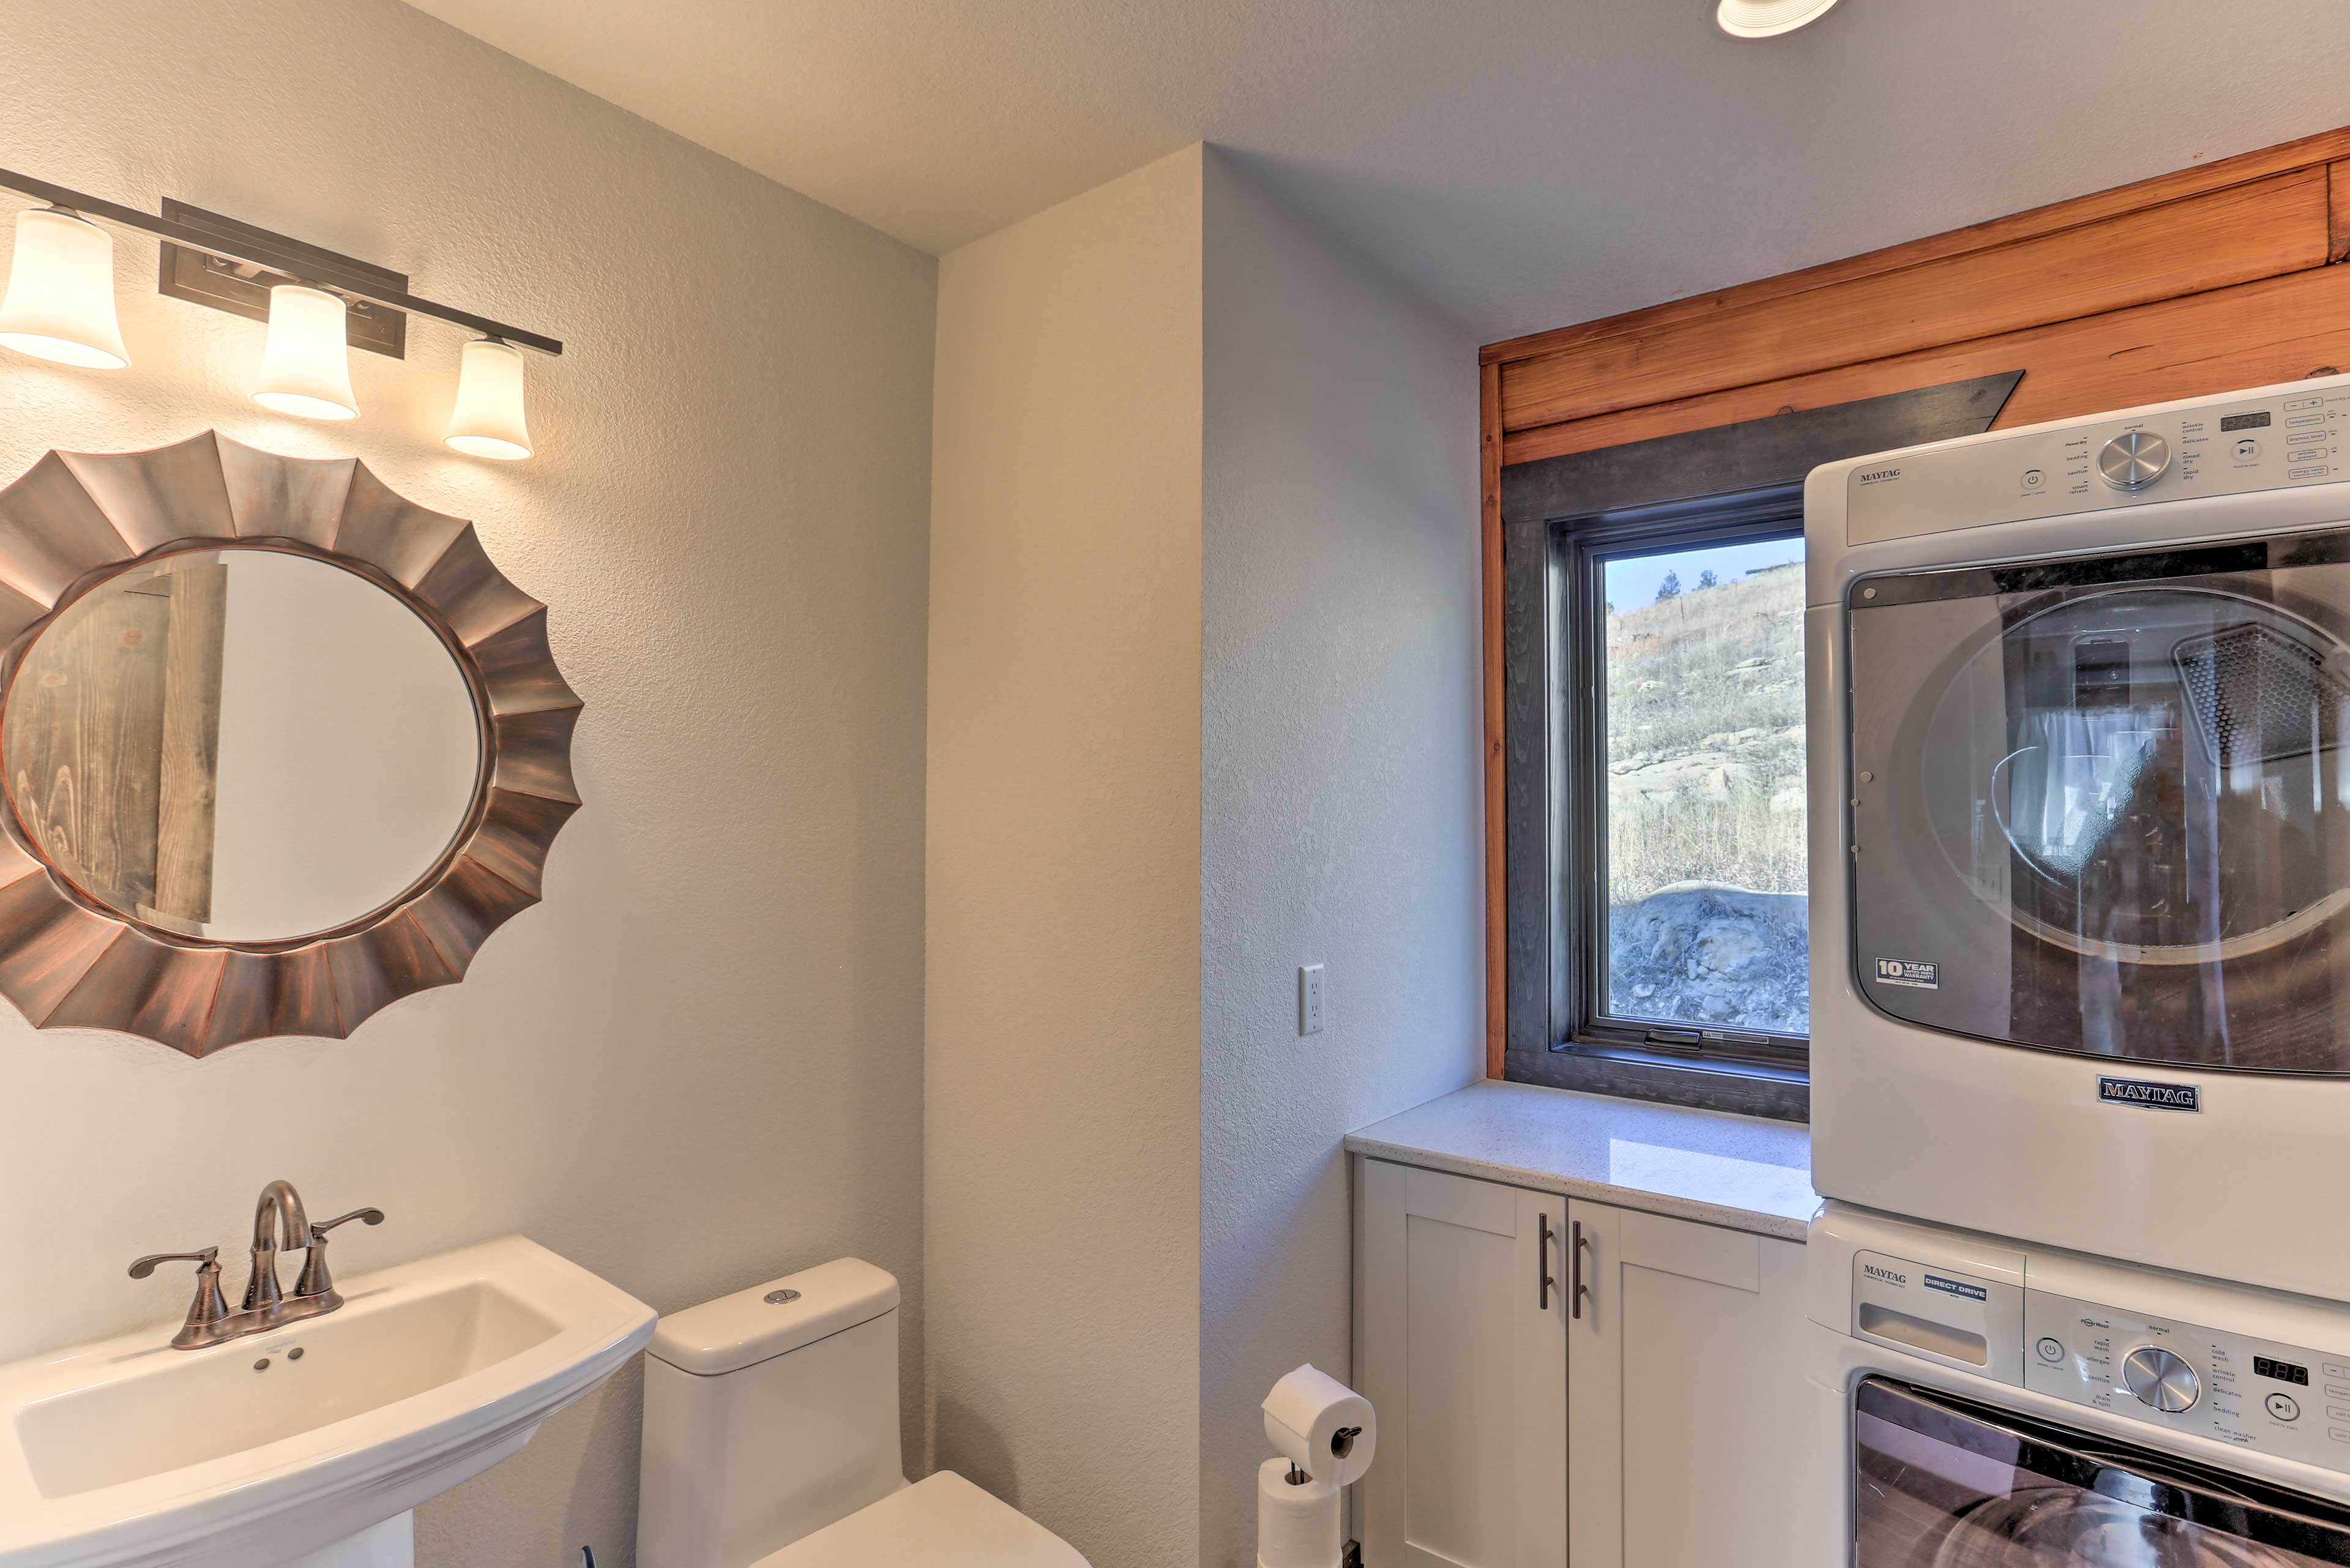 This half bathroom also serves as a laundry room!